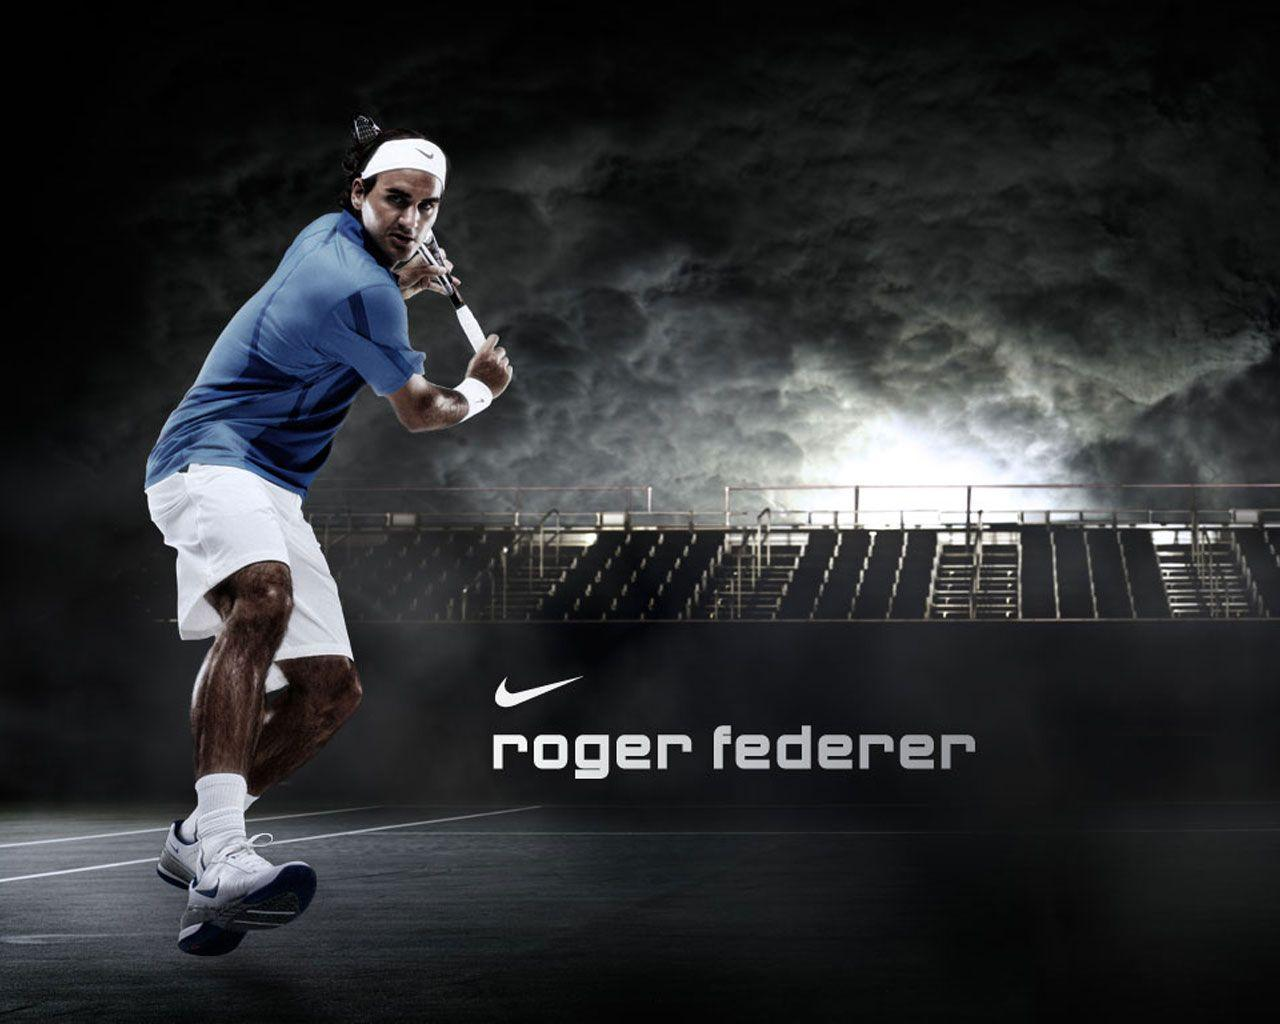 Sports Wallpapers HD: Tennis Wallpapers HD